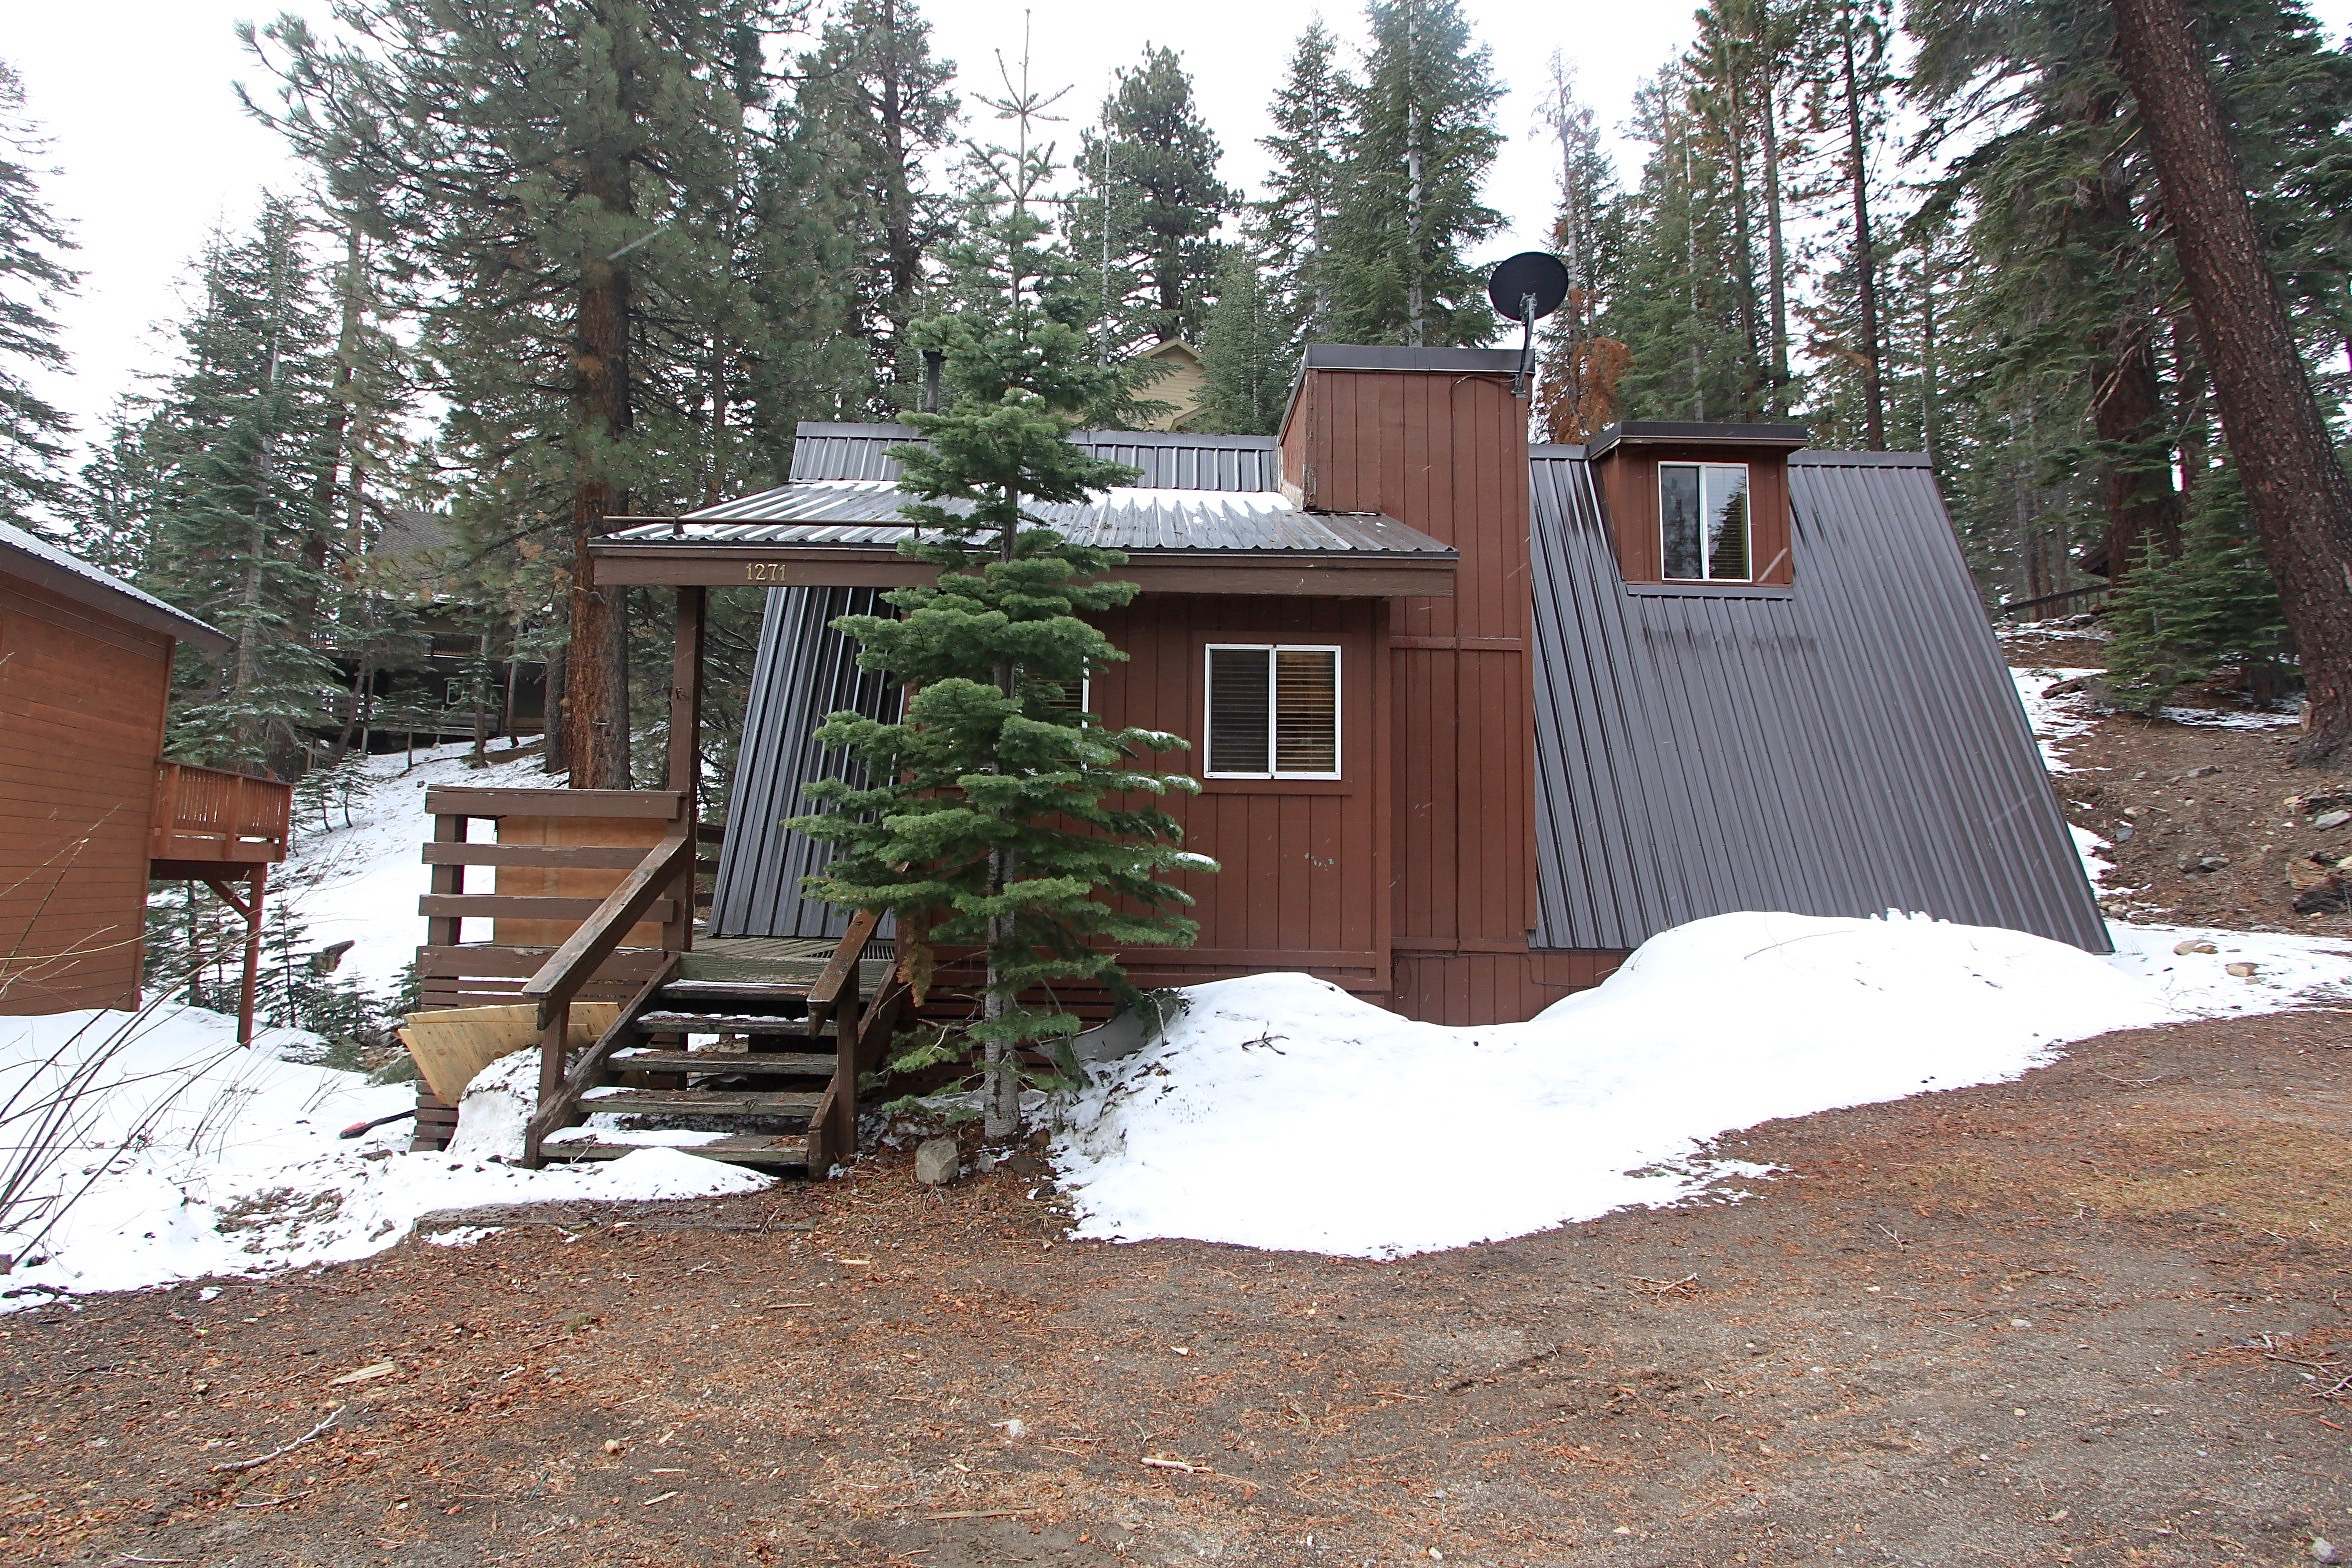 1271 FOREST TRAIL, MAMMOTH LAKES